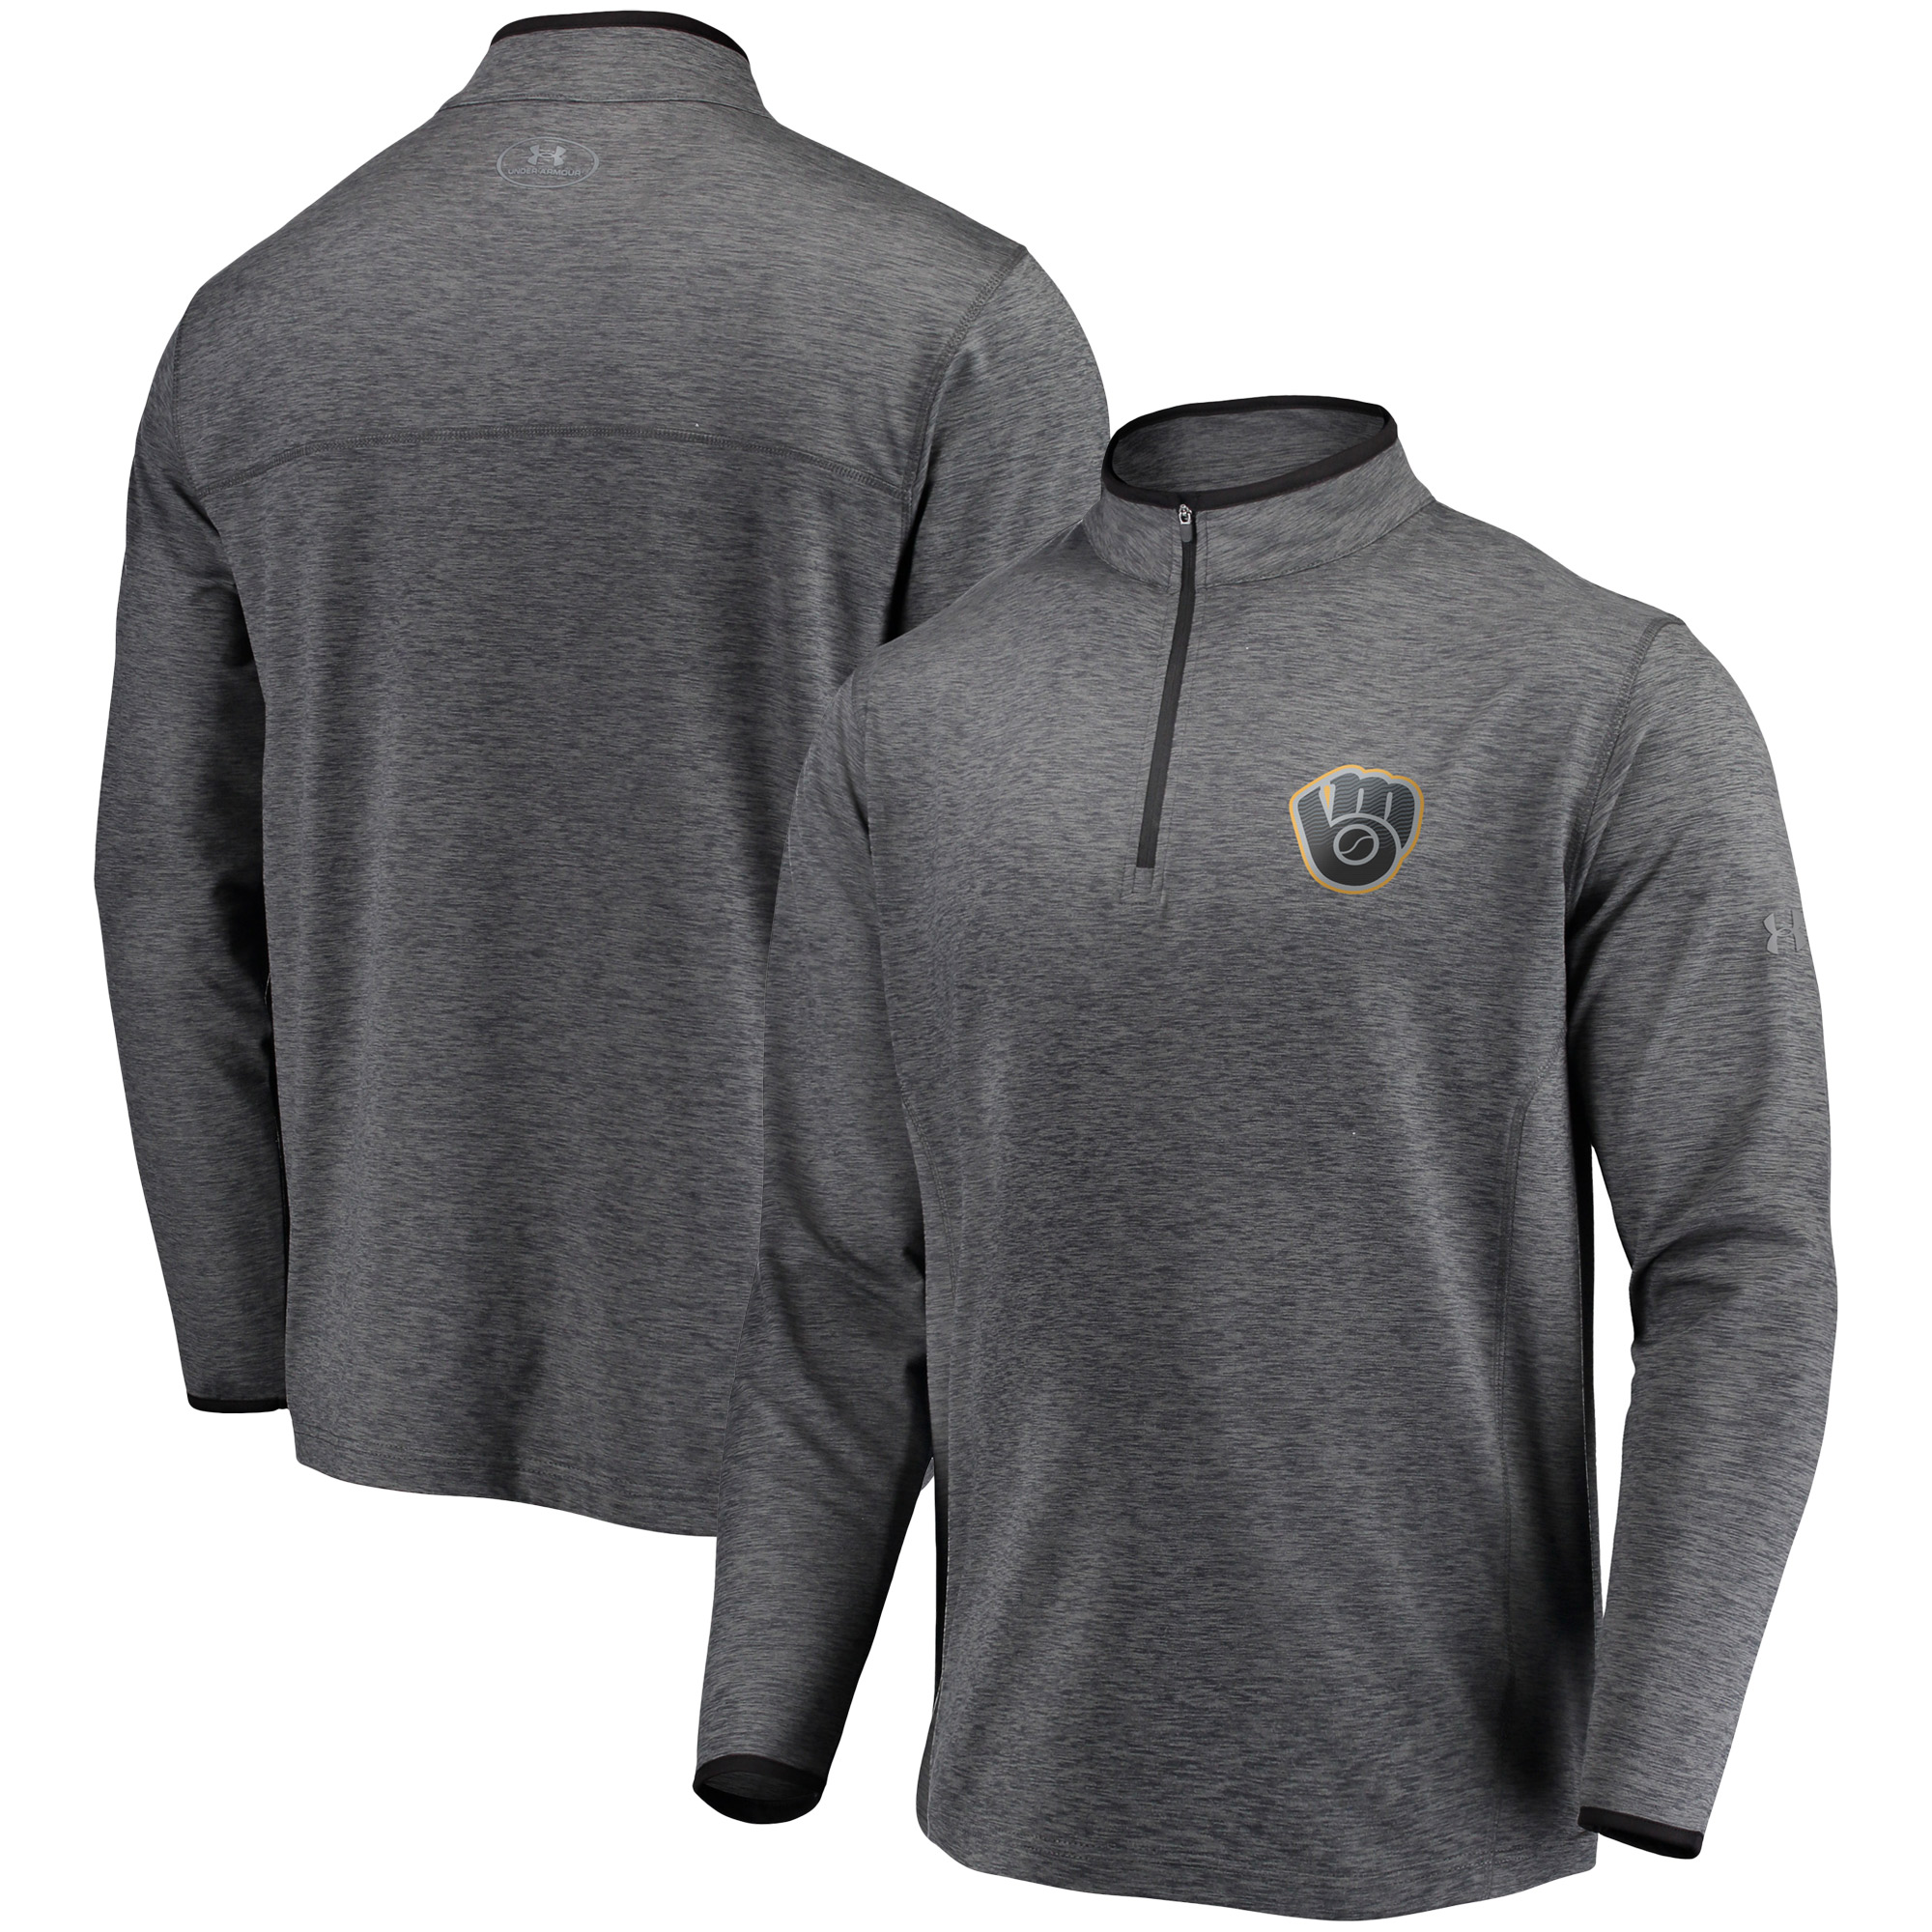 Milwaukee Brewers Under Armour Stretch Reflective Logo Performance Quarter-Zip Pullover Jacket - Heathered Charcoal